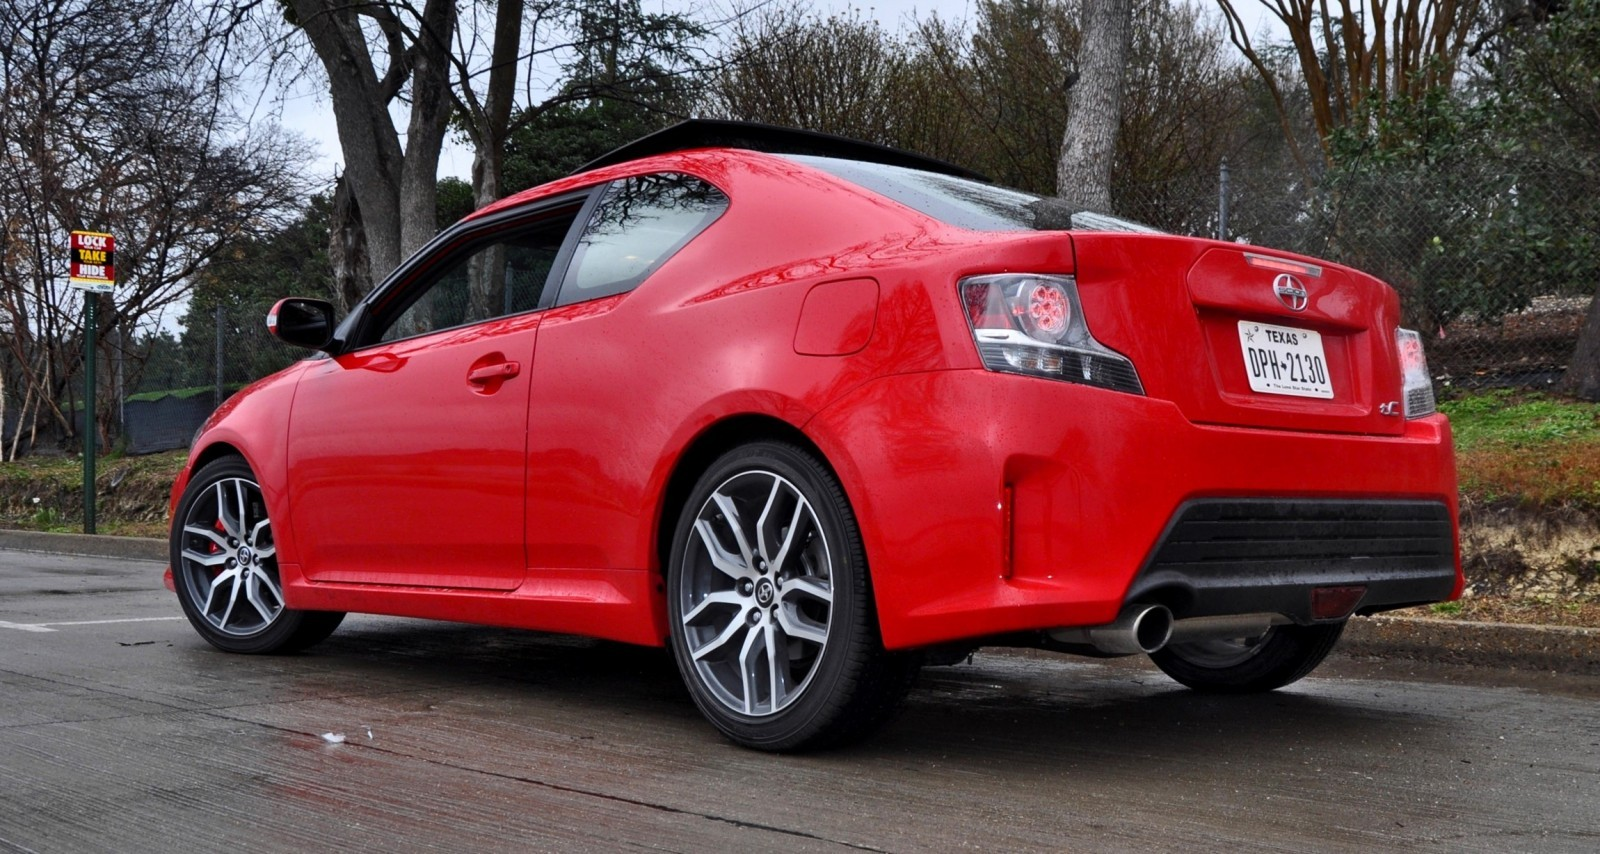 Road Test Review - 2015 Scion tC 6-Speed With TRD Performance Parts 64